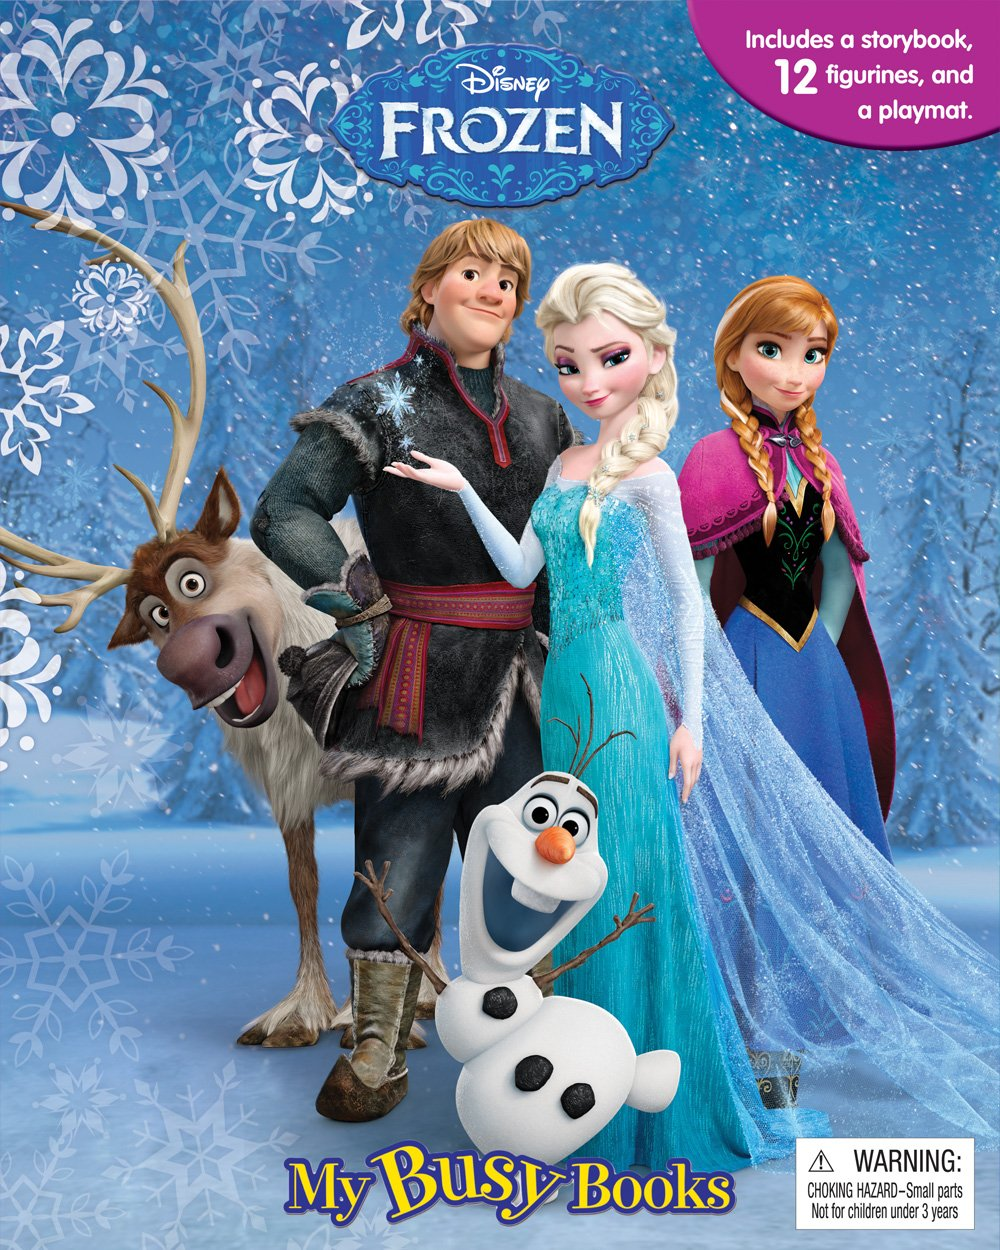 Disney Frozen My Busy Book product image